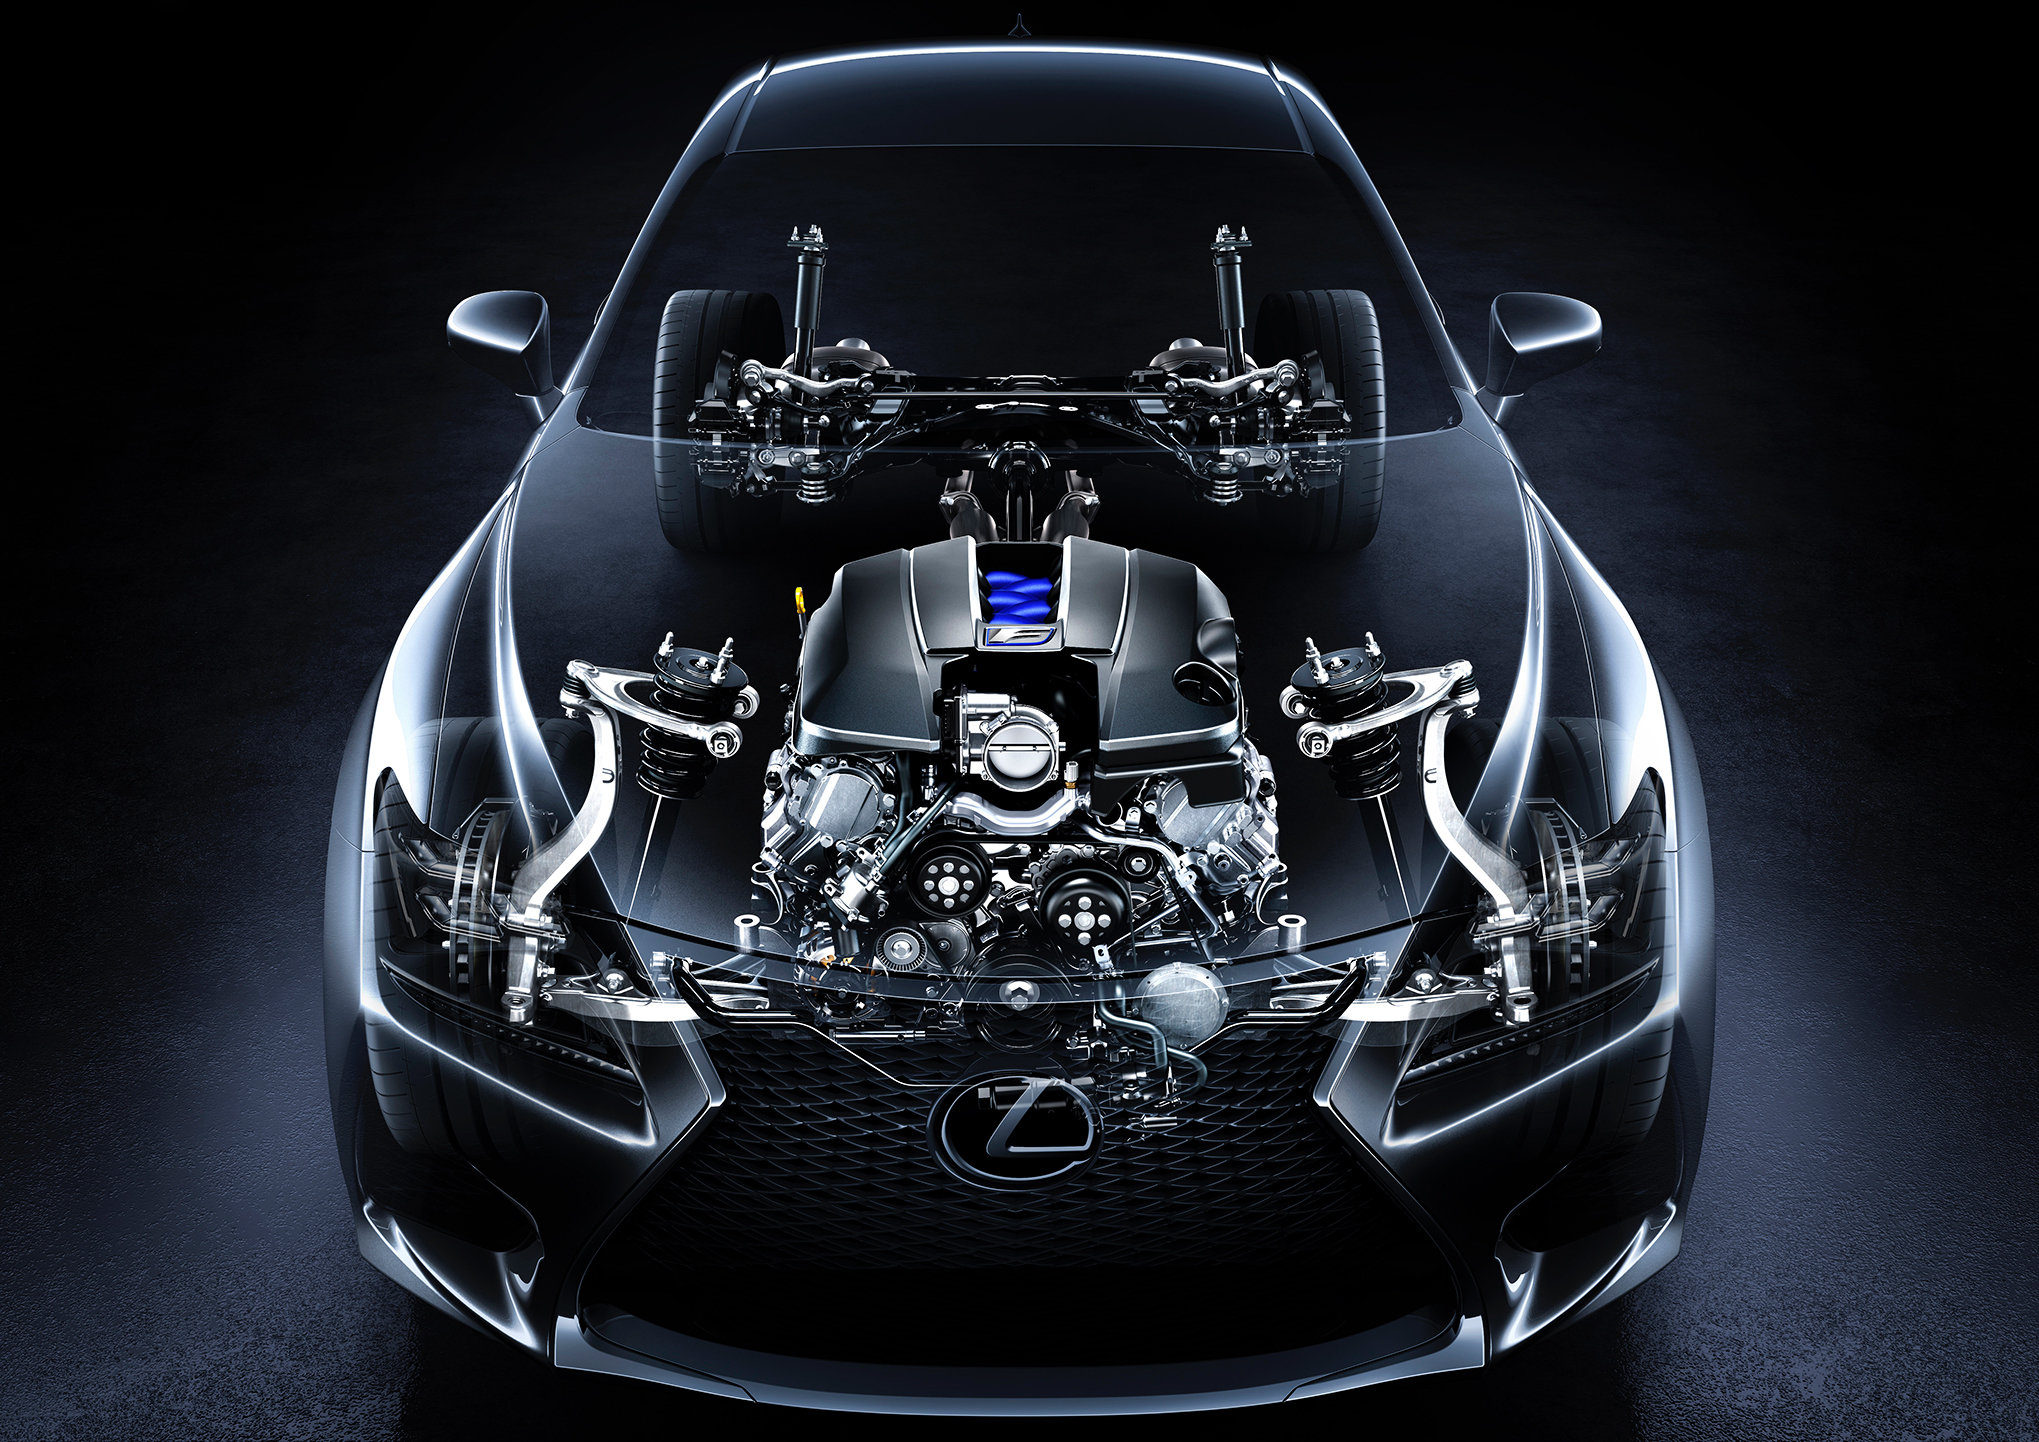 Lexus Rc F Interior  Hd Wallpapers